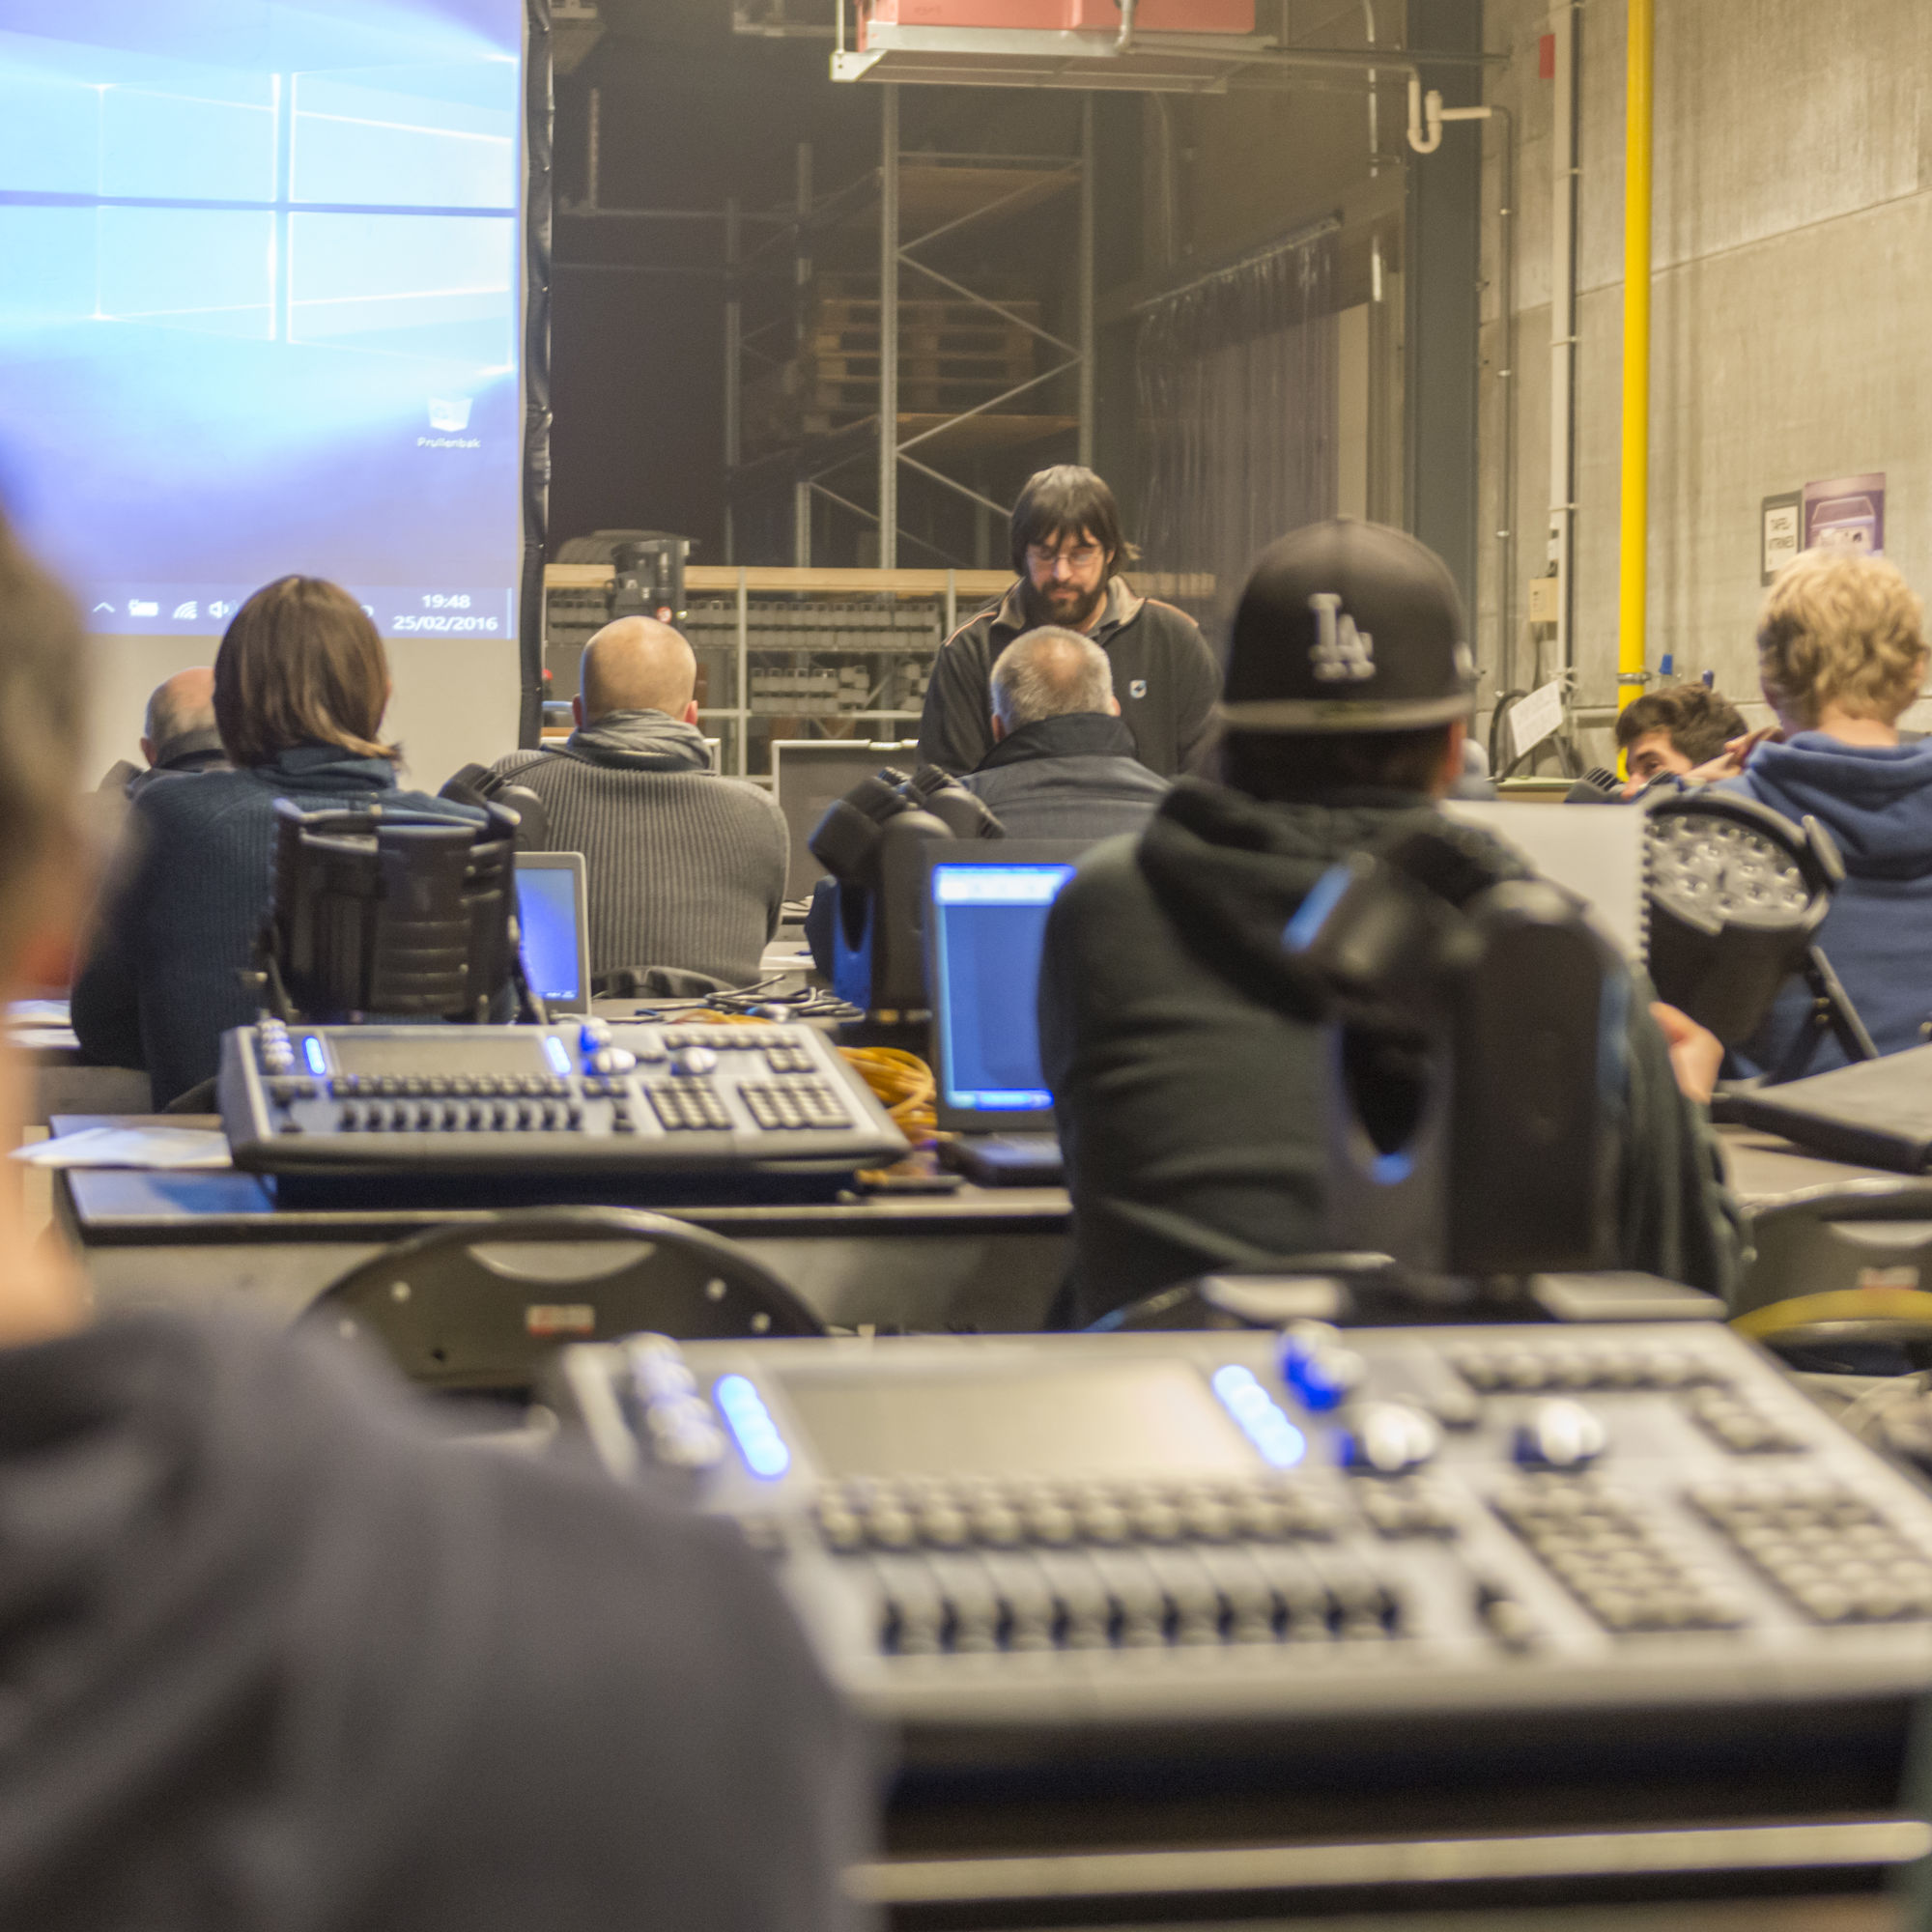 160225-uitleendienst-workshop-chamsys-04.jpg